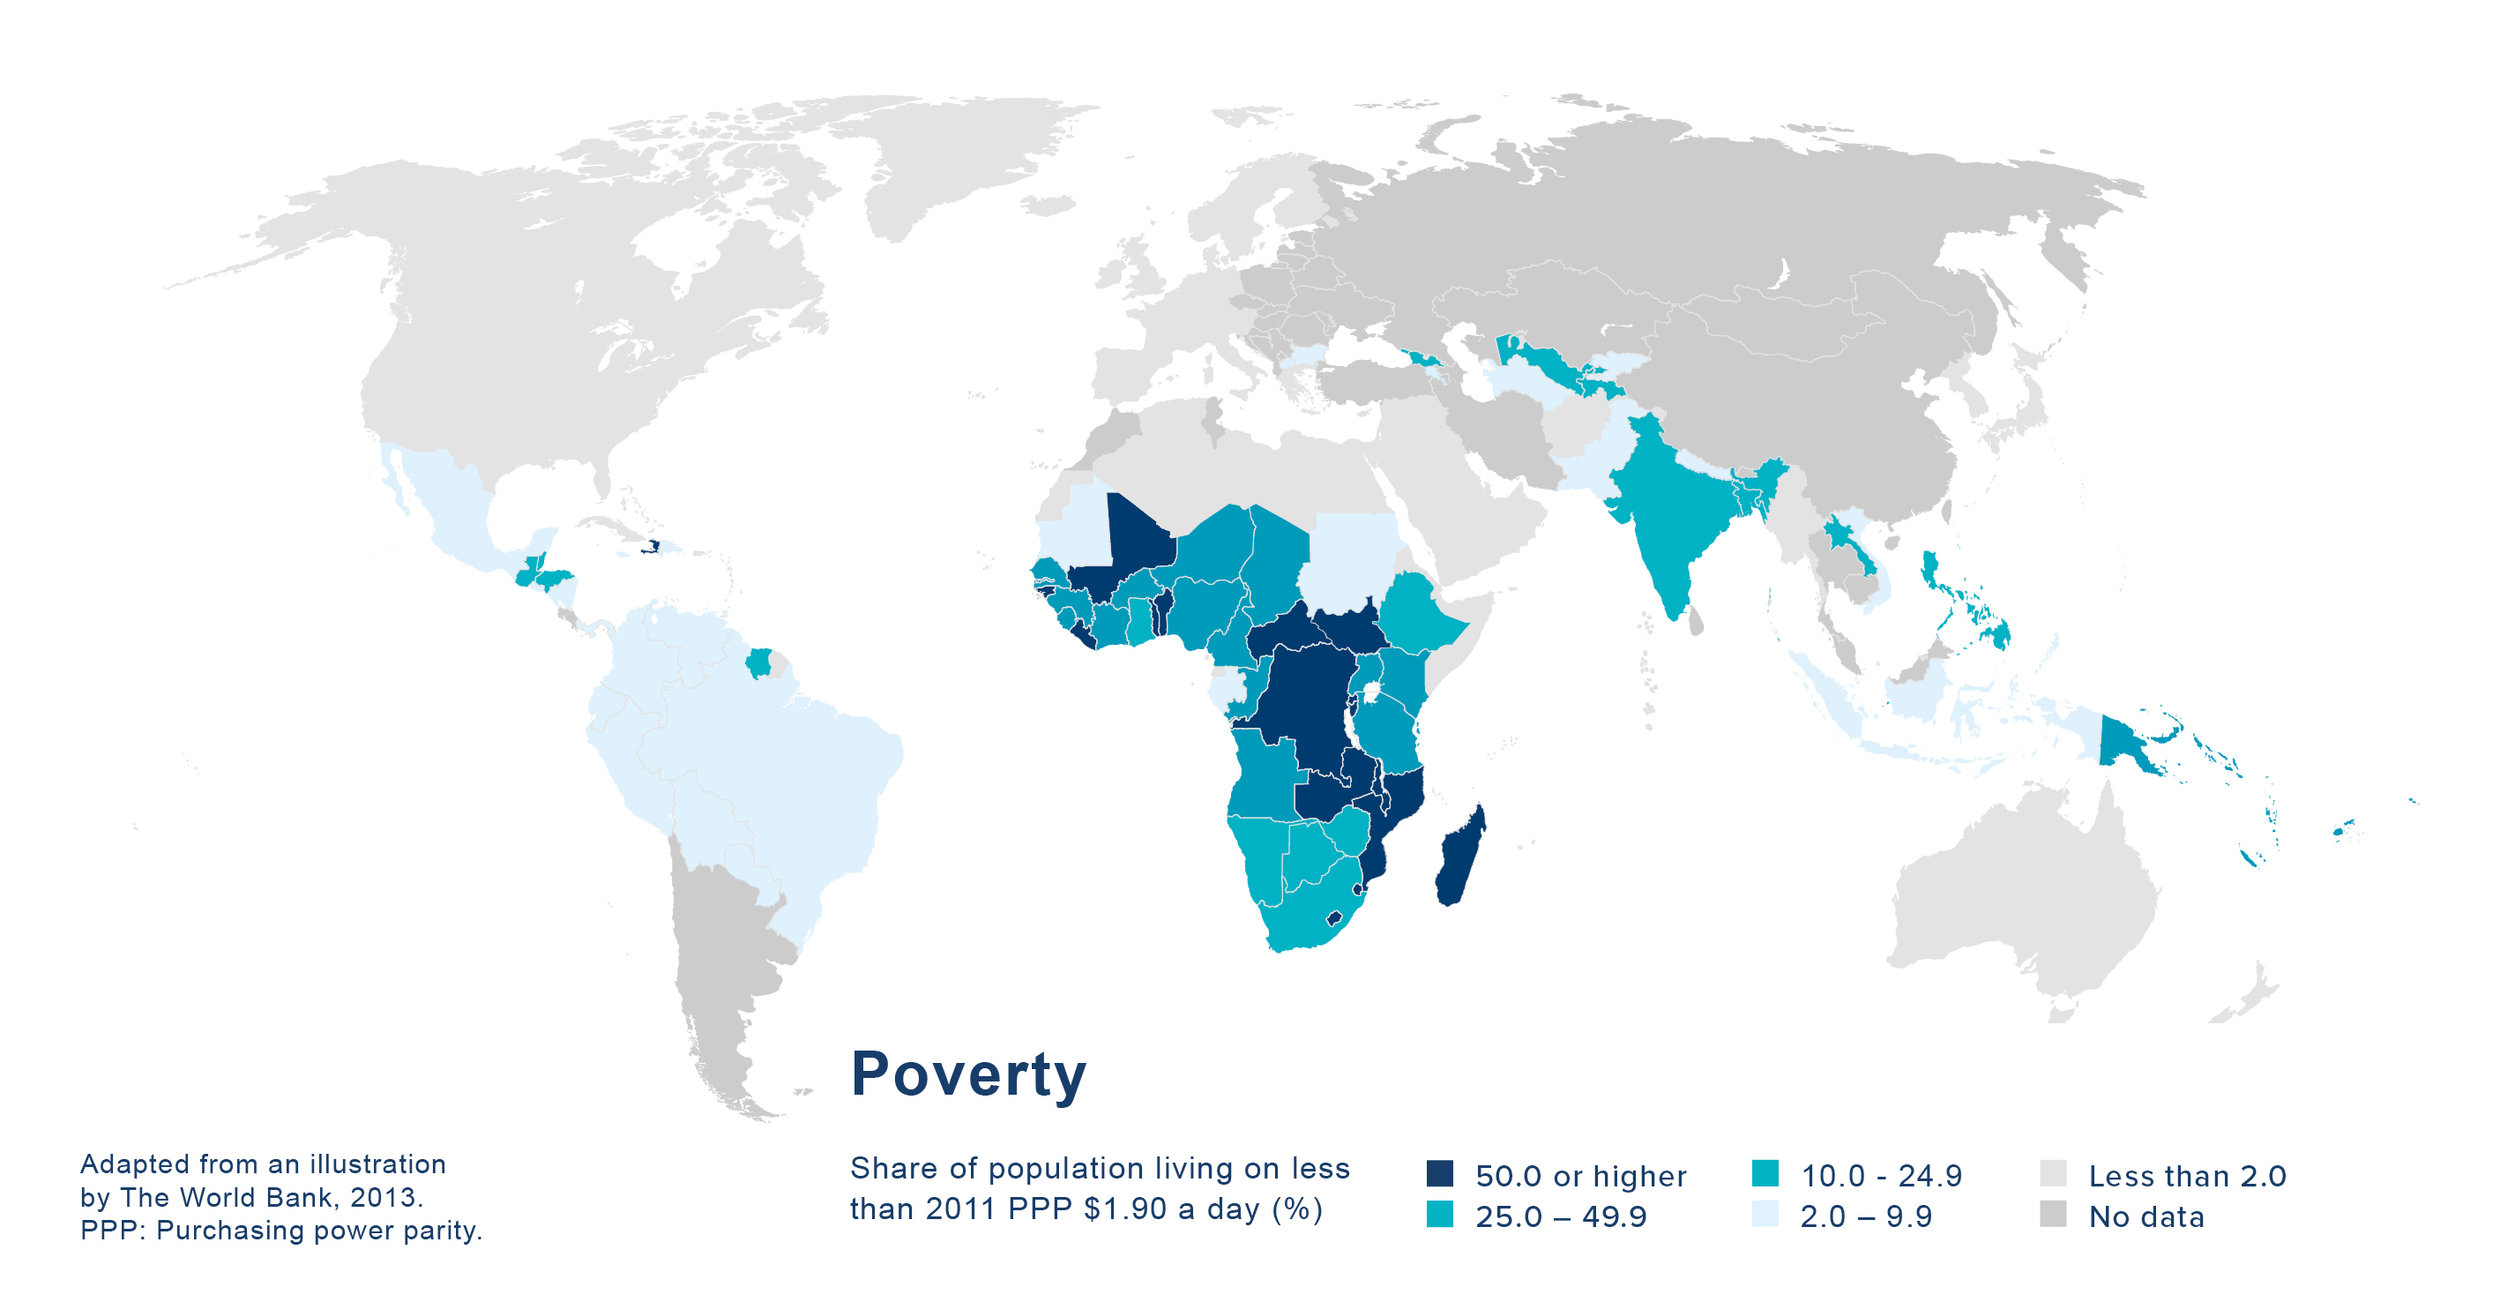 Global Poverty Distribution Map